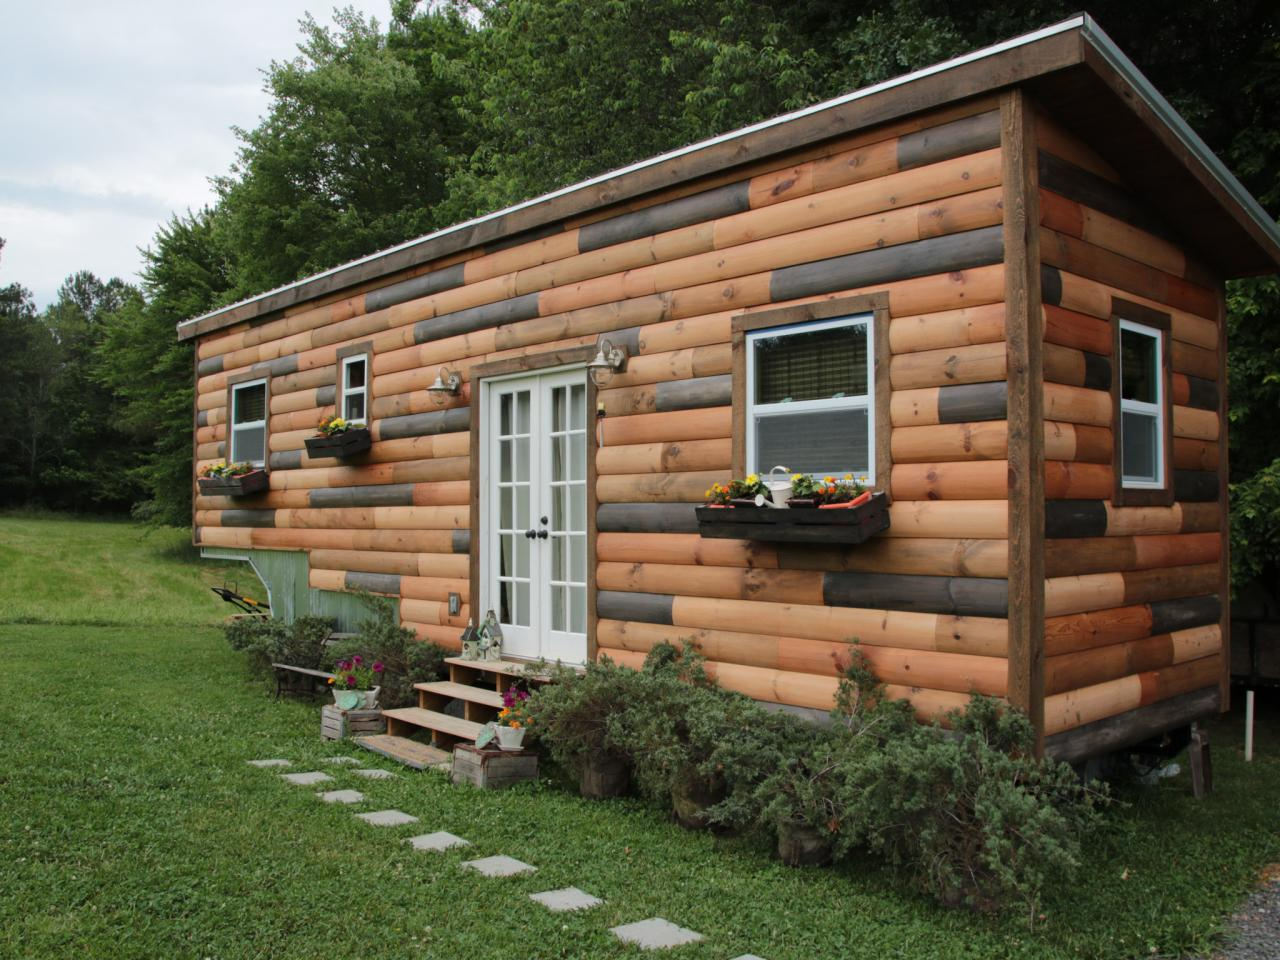 Tiny Home Designs: Decorating Ideas For Your Airstream, RV, Trailer And More